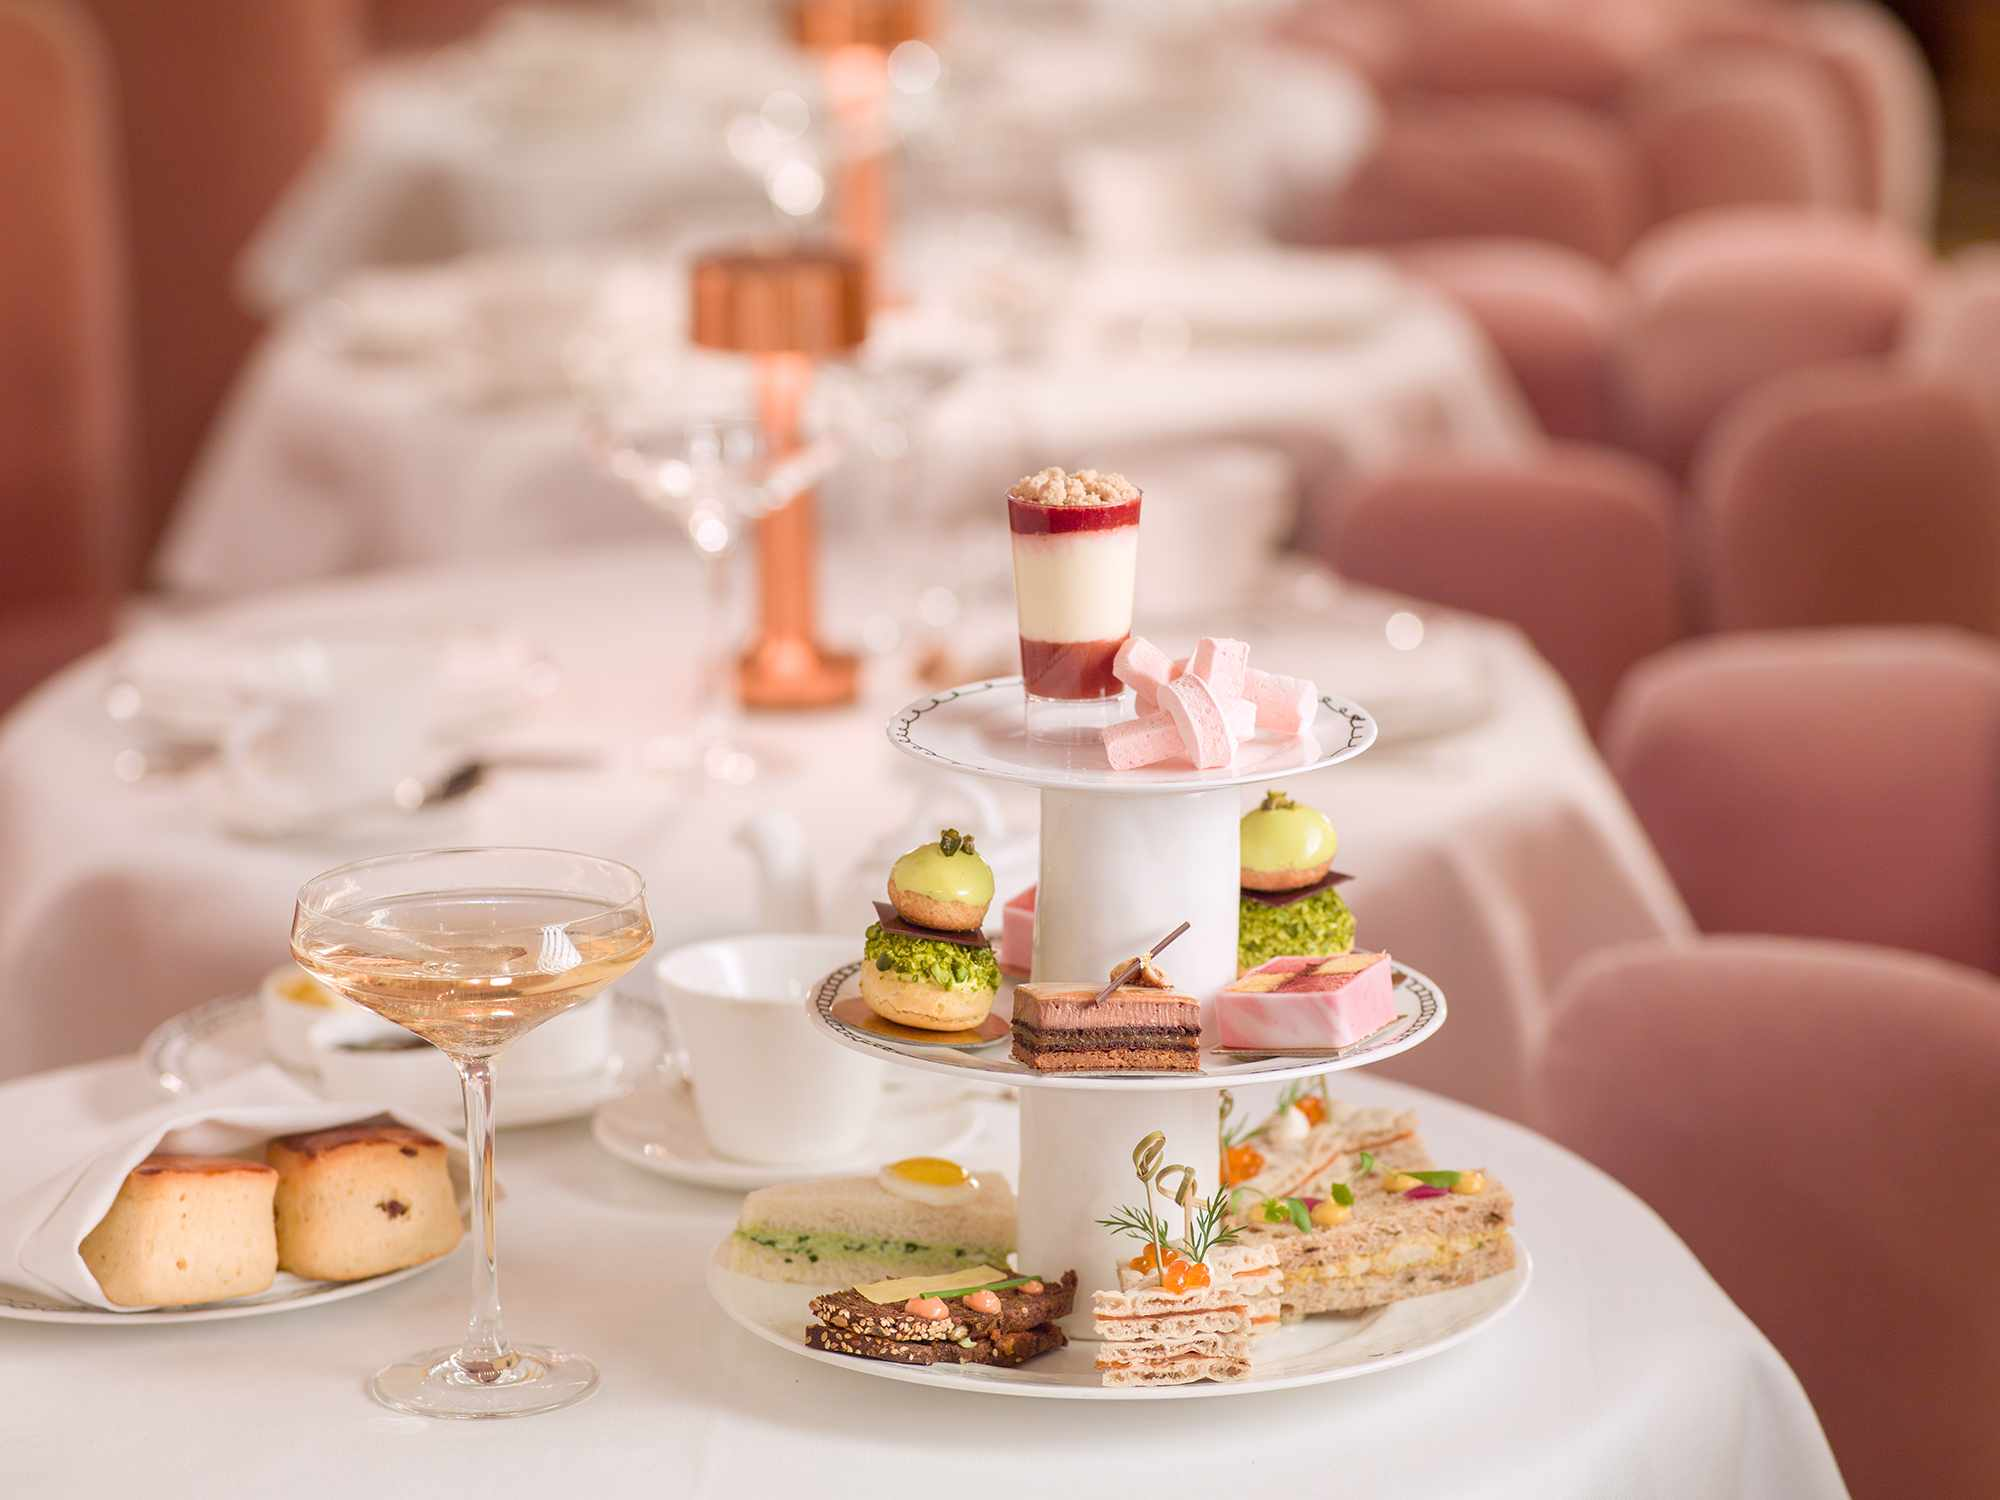 Afternoon tea at Sketch Afternoon Tea in London: Best 25 Tea Rooms and Hotels To Visit in 2018